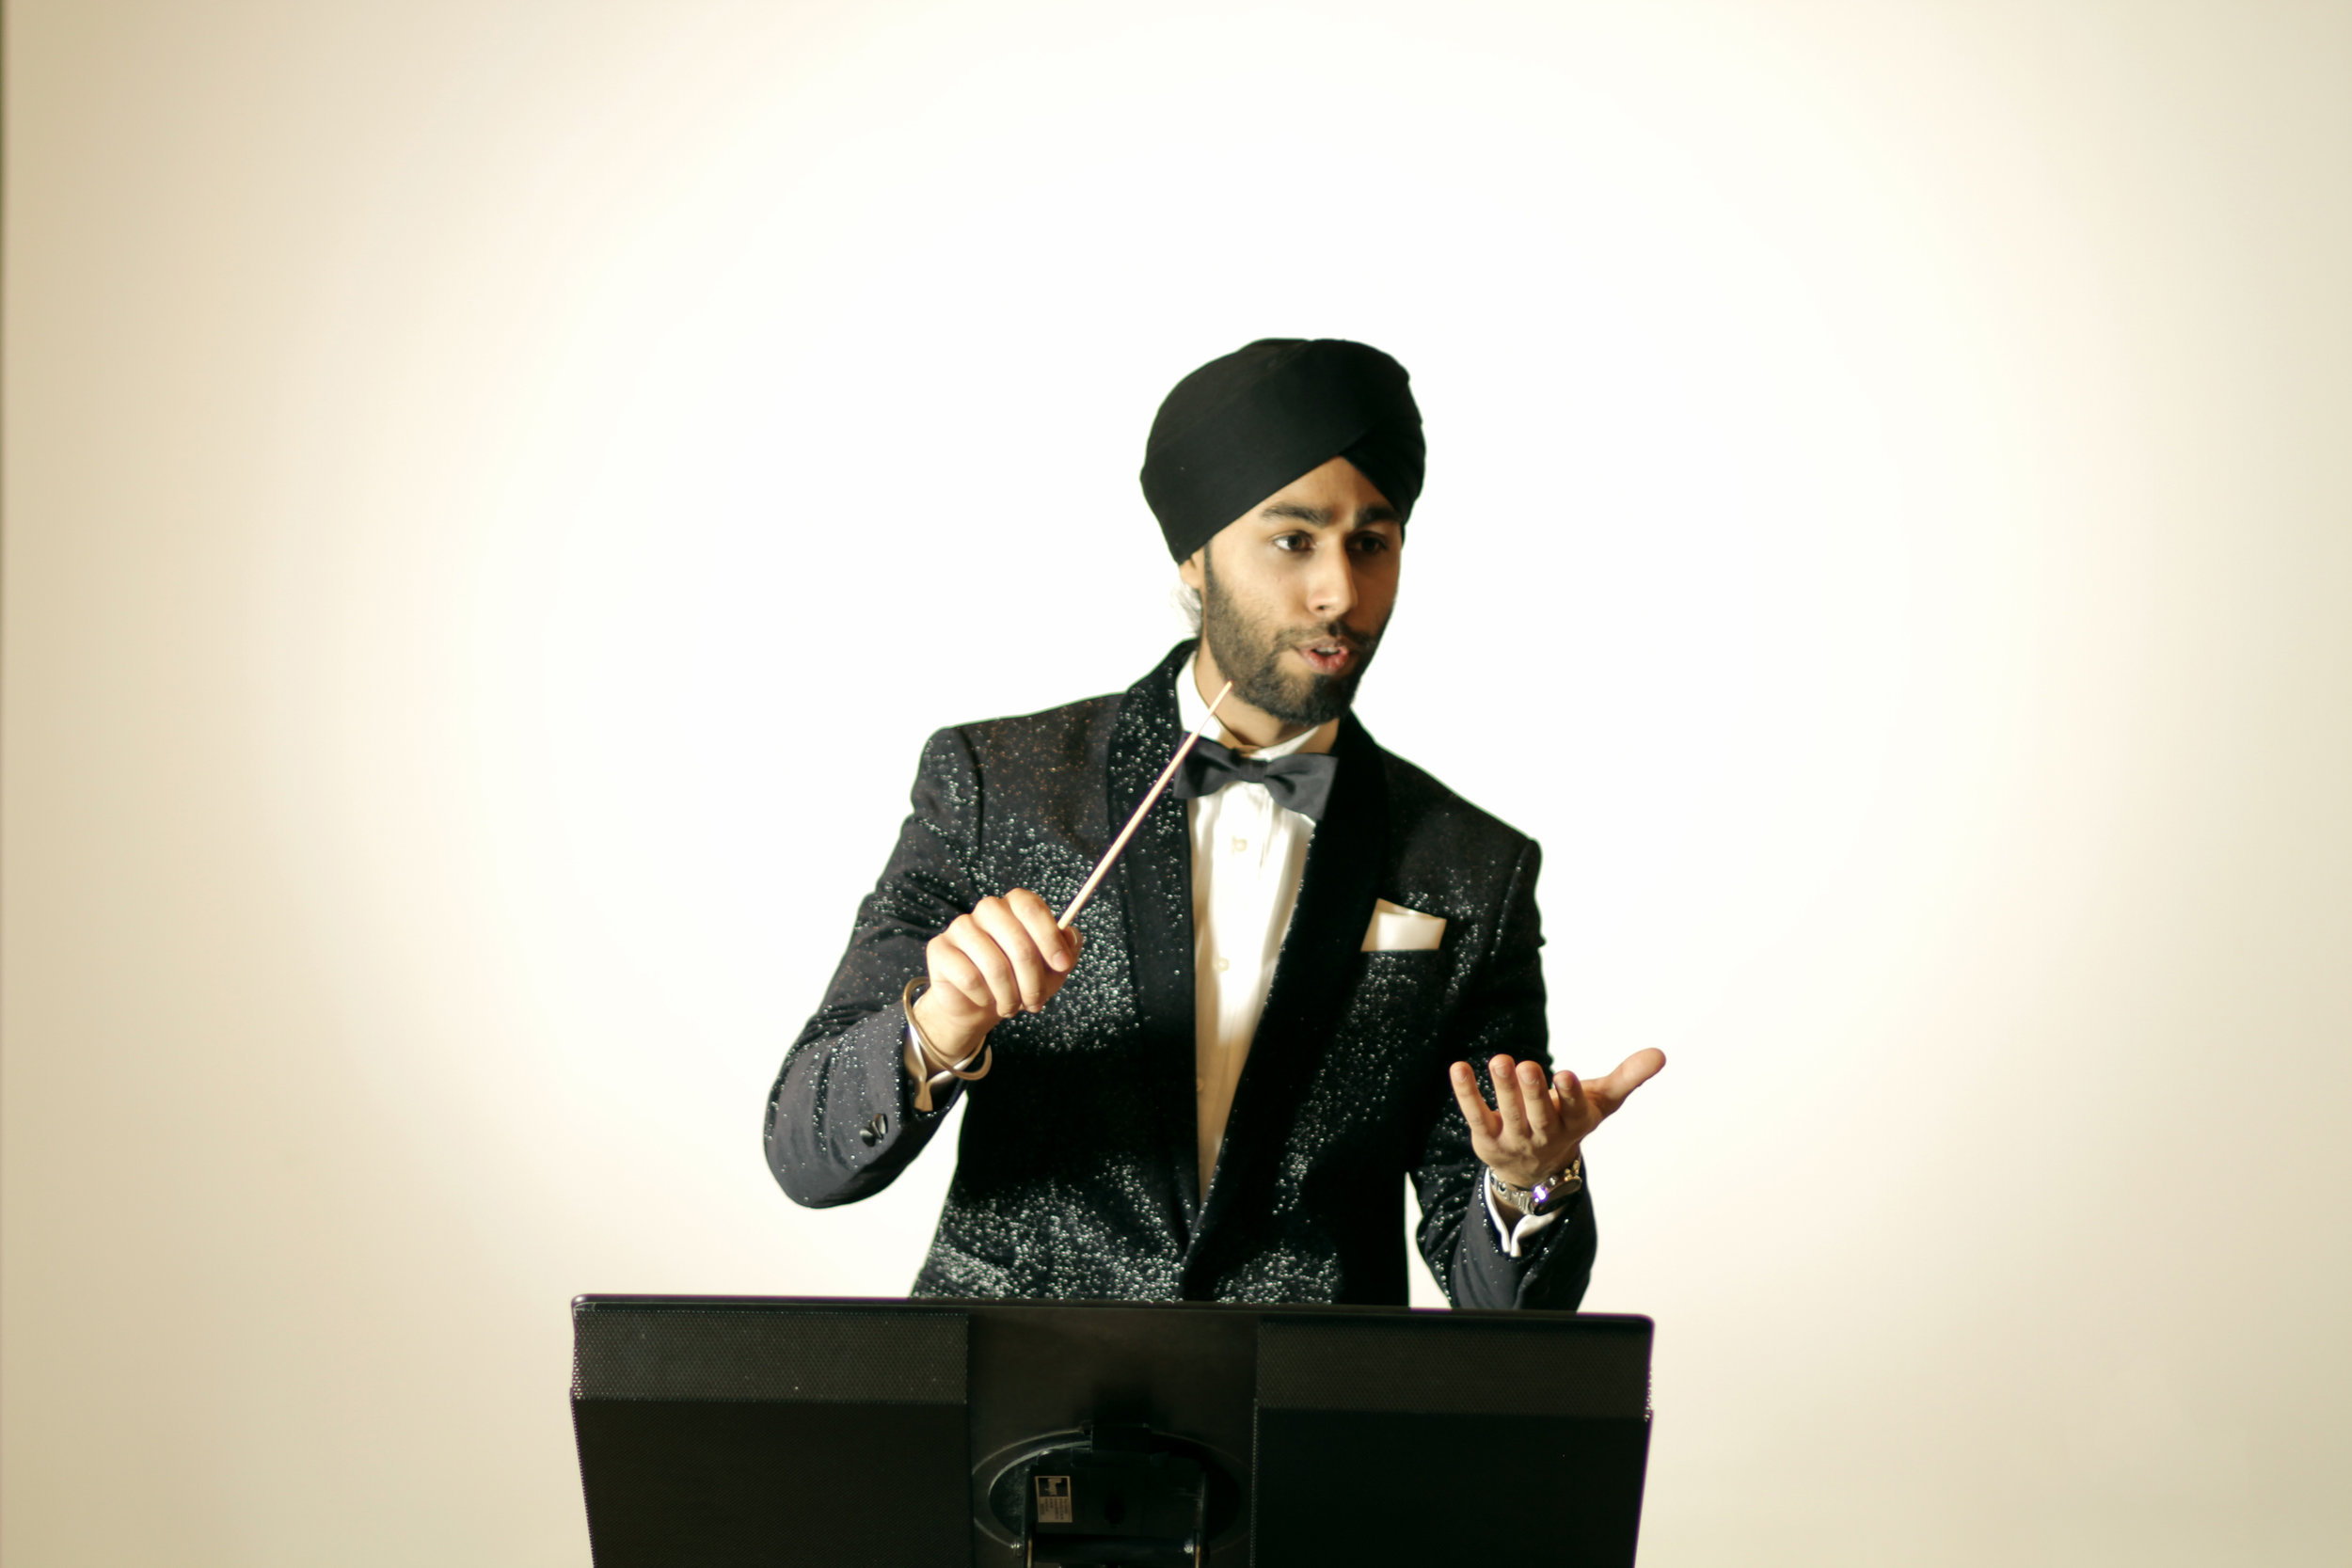 Gagan Singh ConductorEDITED.jpg